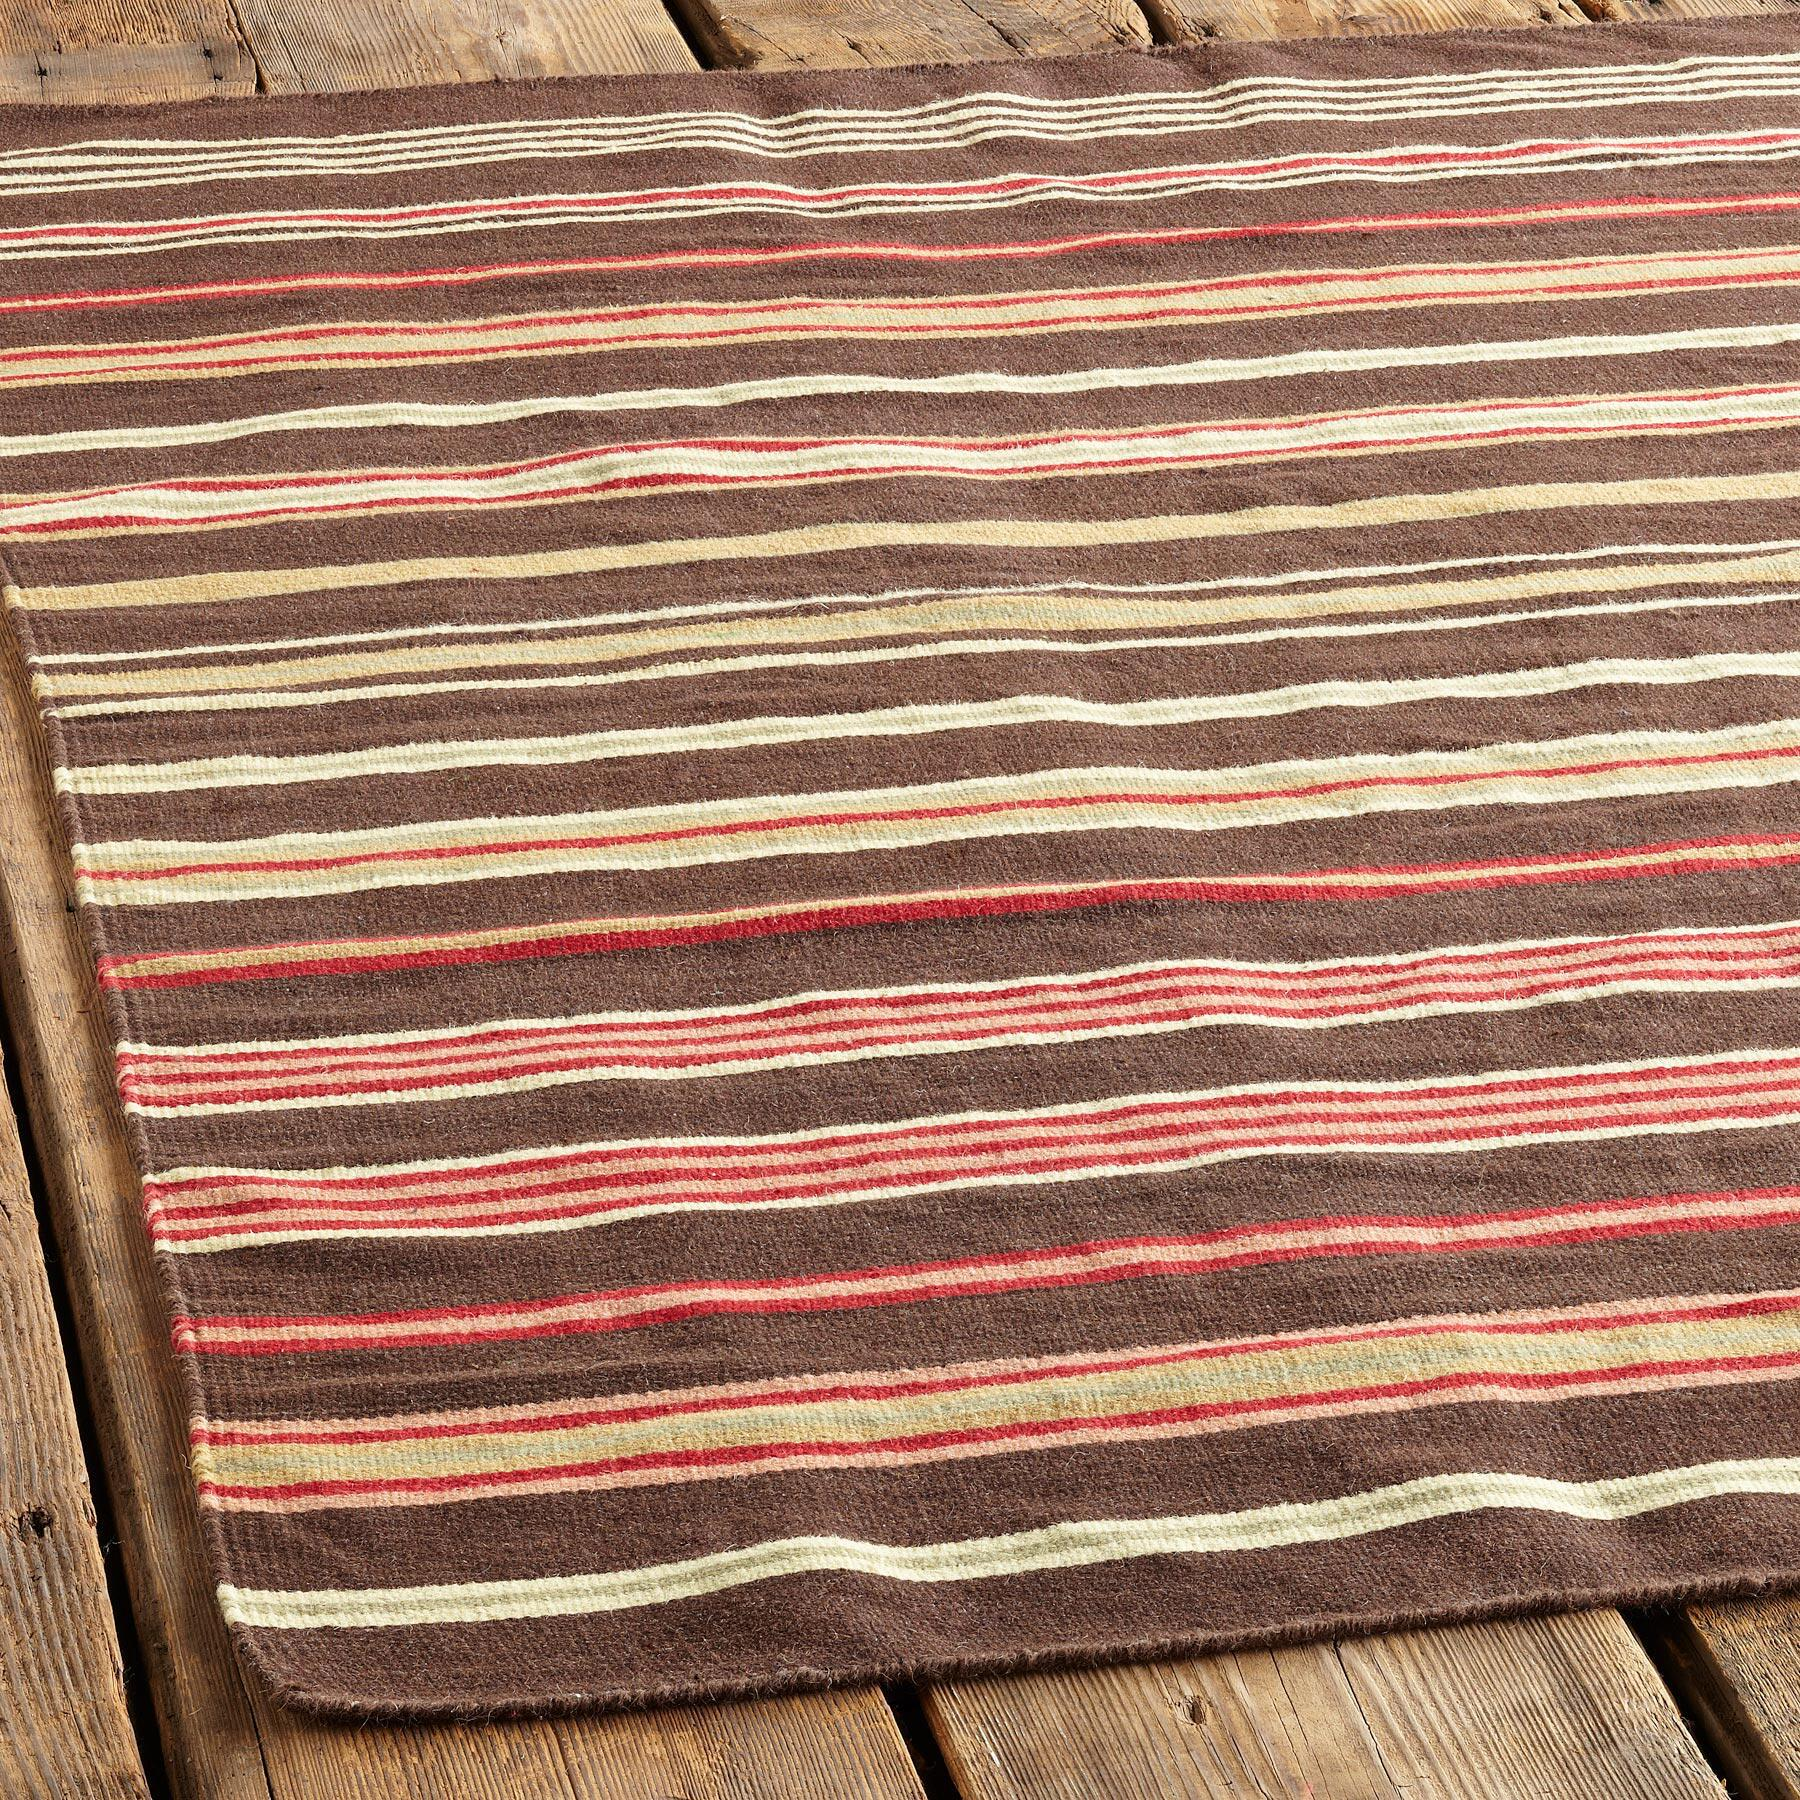 HAWTHORNE STRIPED RUG 8X10: View 2